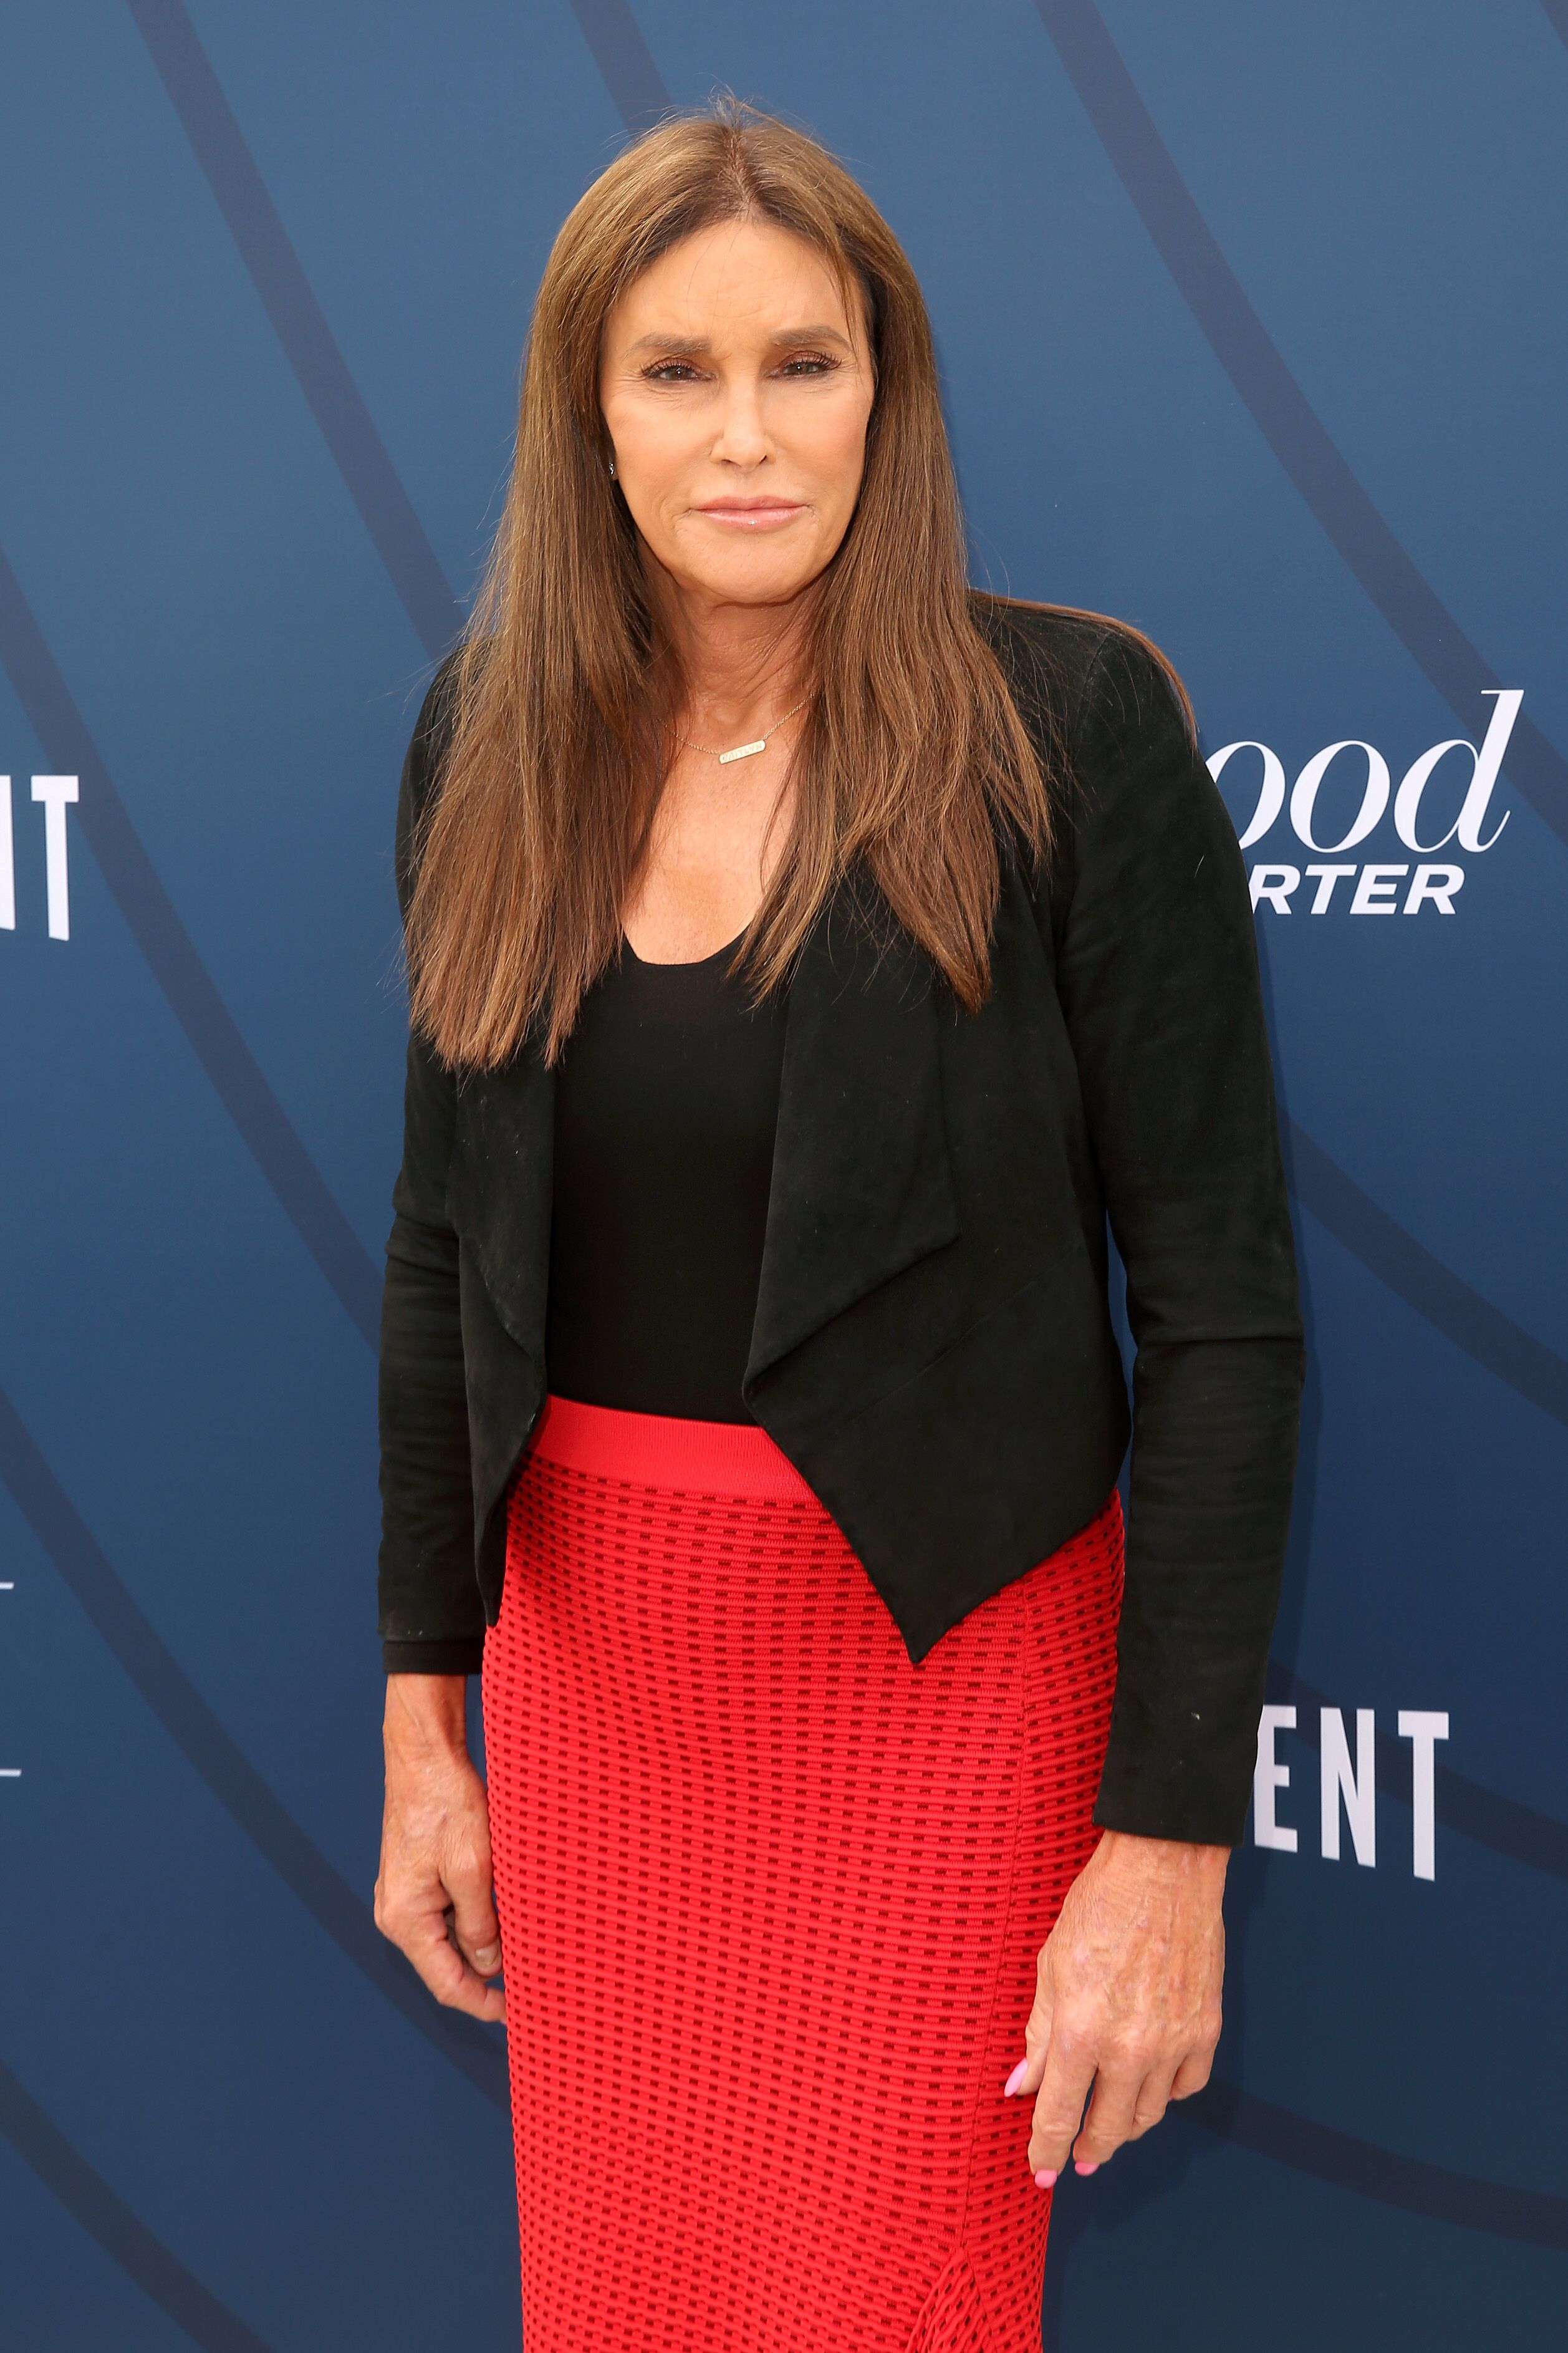 Caitlyn Jenner at The Hollywood Reporter's Empowerment In Entertainment Event 2019 on April 30, 2019, in Los Angeles, California | Photo: Jesse Grant/Getty Images